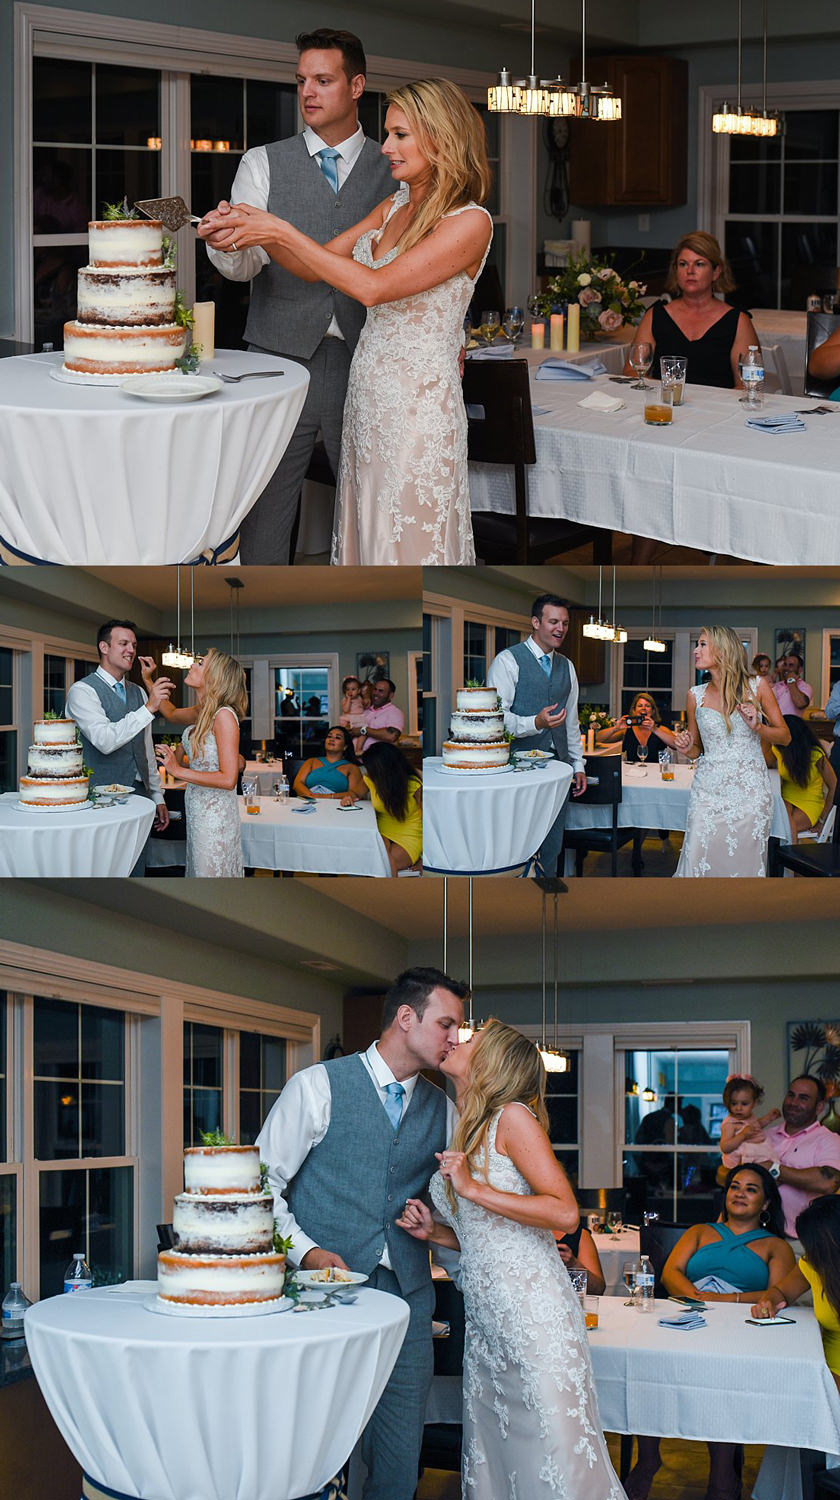 va-wedding-photographer-sandbridge-beach-cottage-wedding-photos-melissa-bliss-photography.jpg